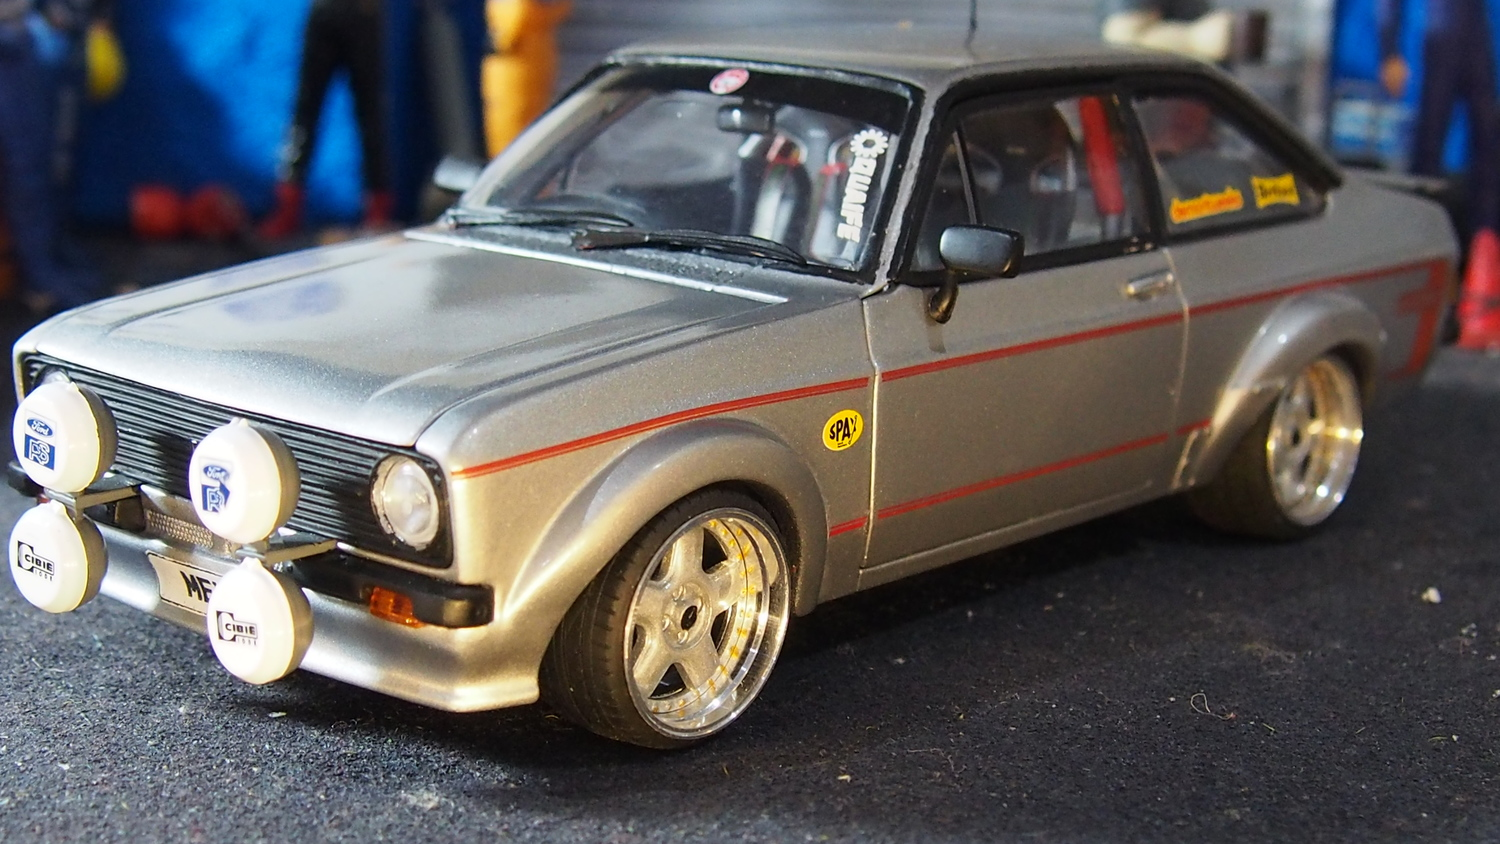 dcf52e23a MK2 ford escort RS1800 mexico modified tuning 1:18 scale by sunstar ...